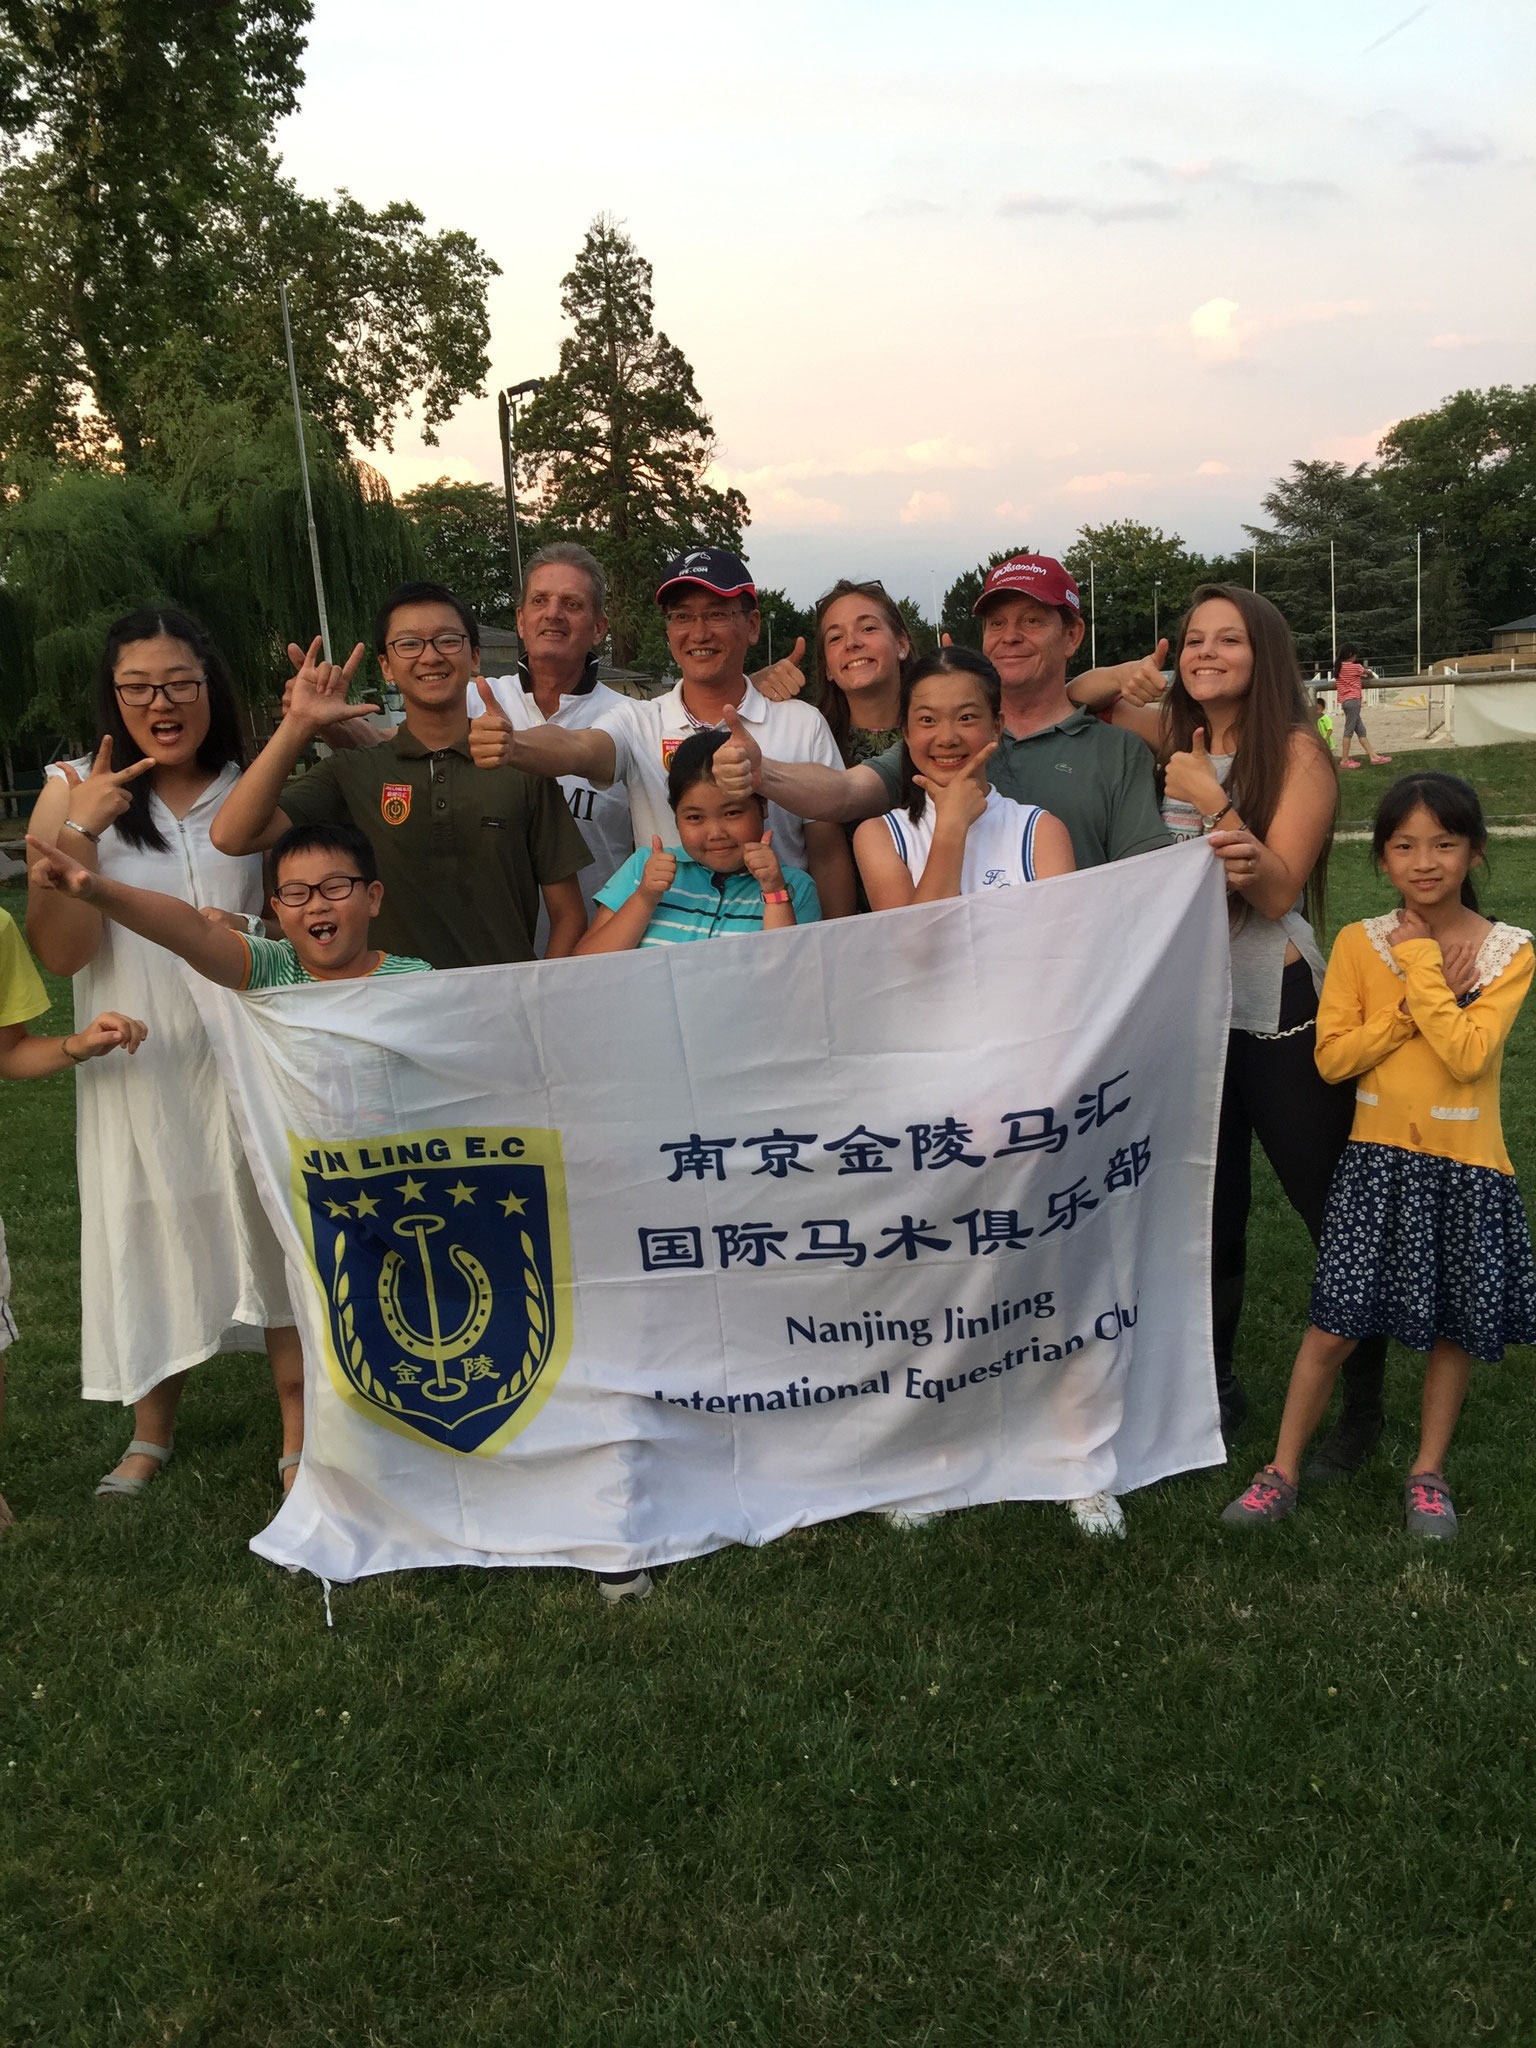 Summer camp 2016: Nanjing Jinling Team